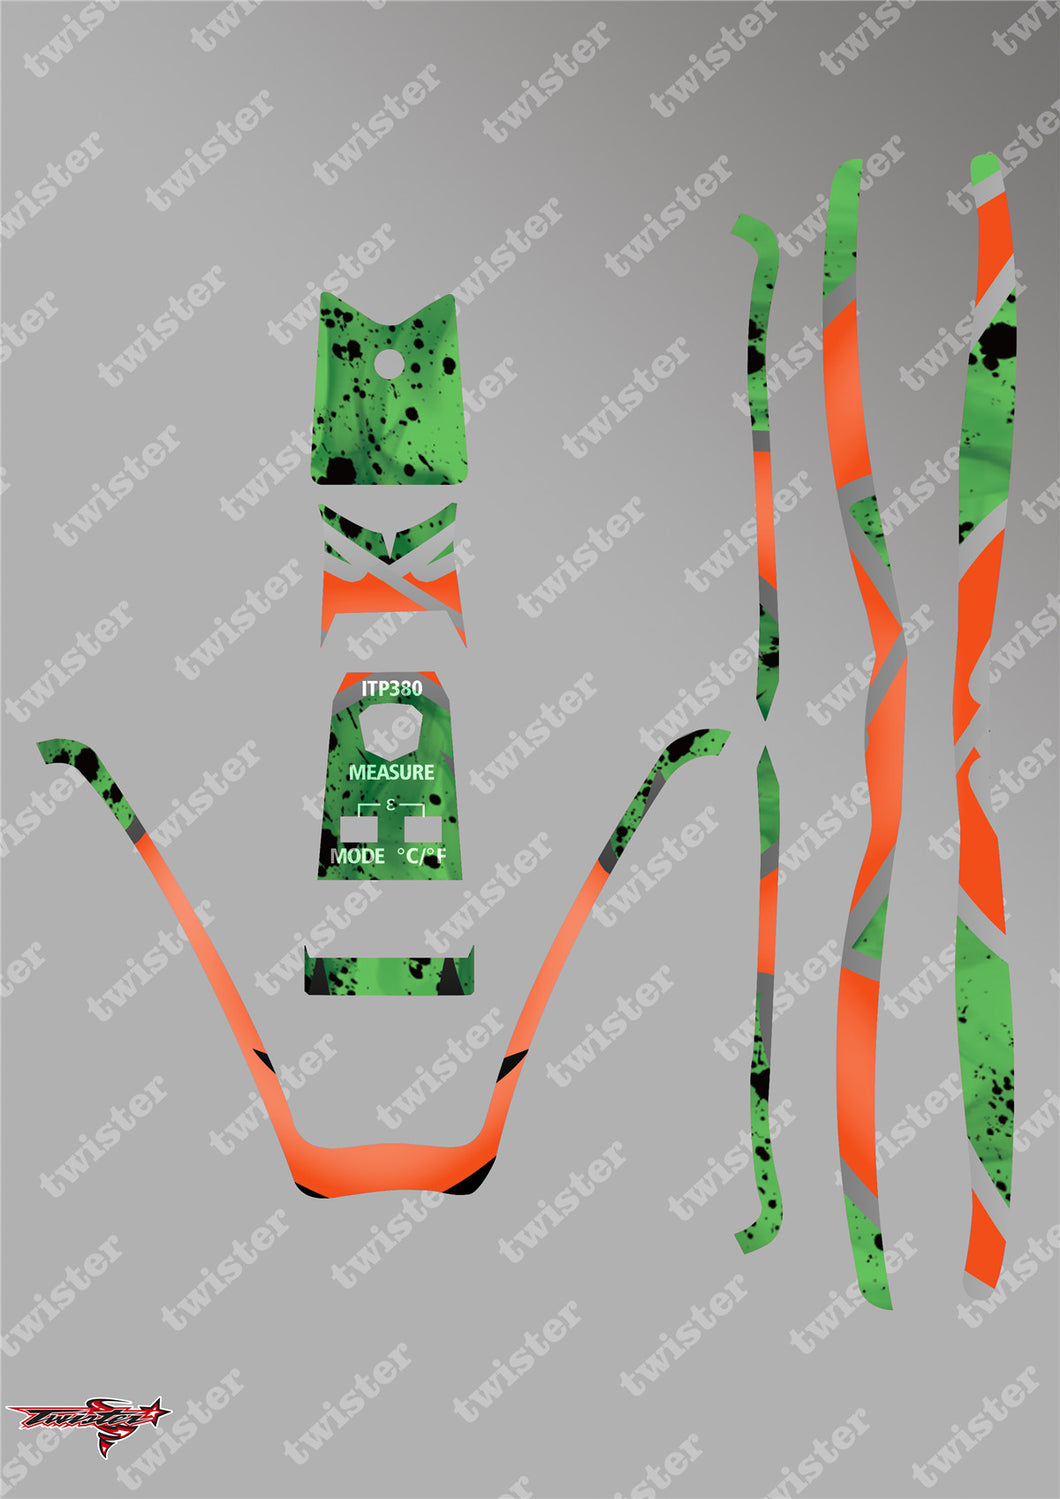 TR-380-MA7 Sky RC ITP380 Metallochrome Wave Pattern Radio Wrap ( Type A7 )4Colors